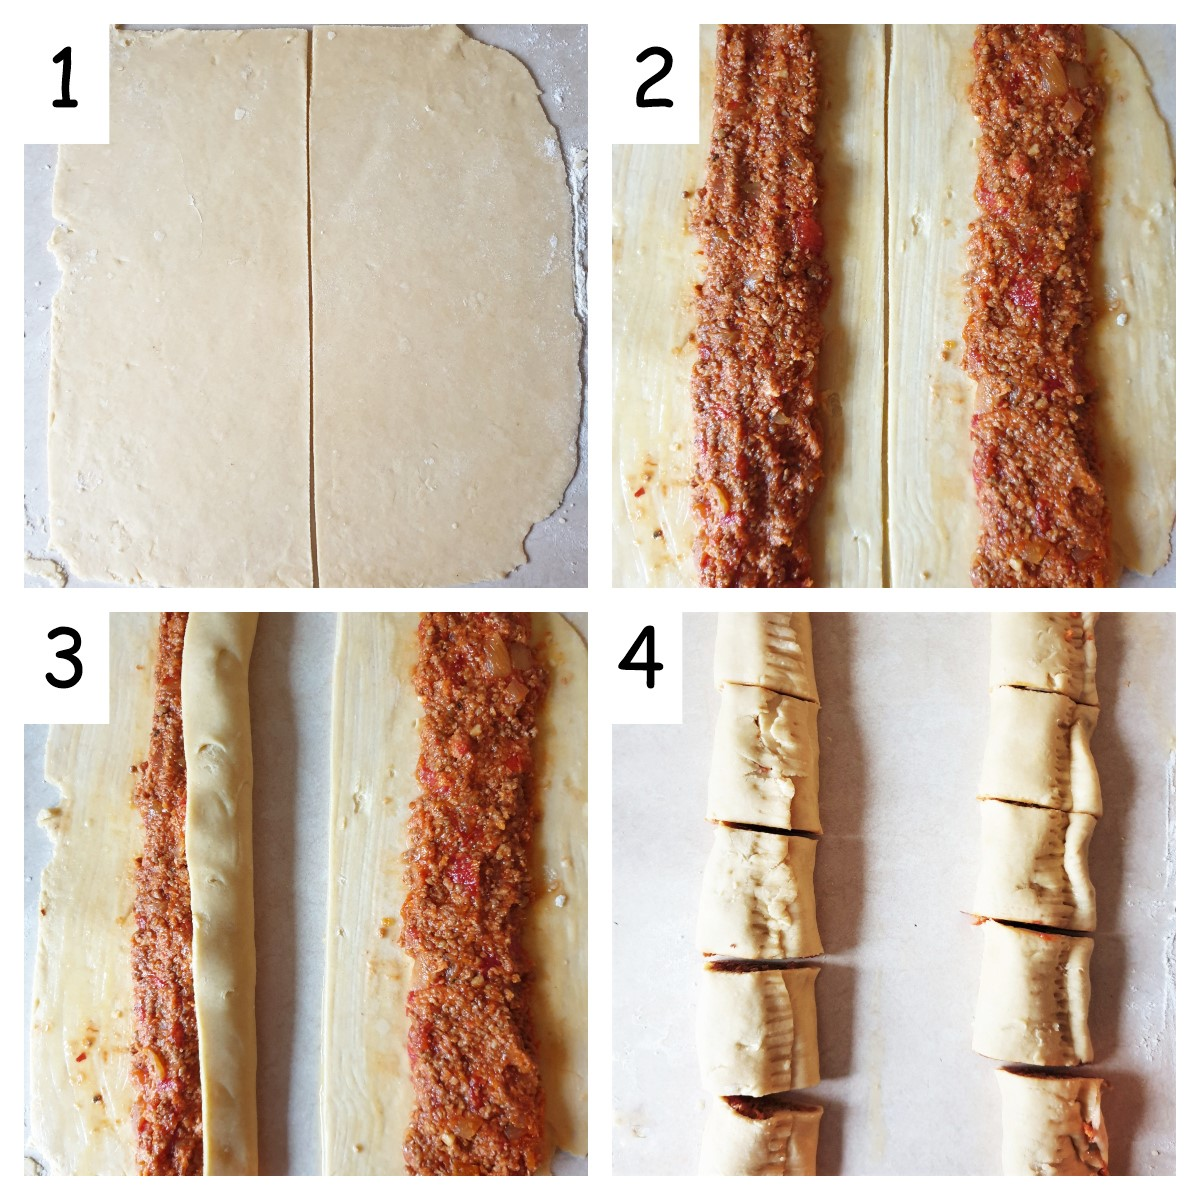 Collage of 4 images showing steps to assemble the sausage rolls.